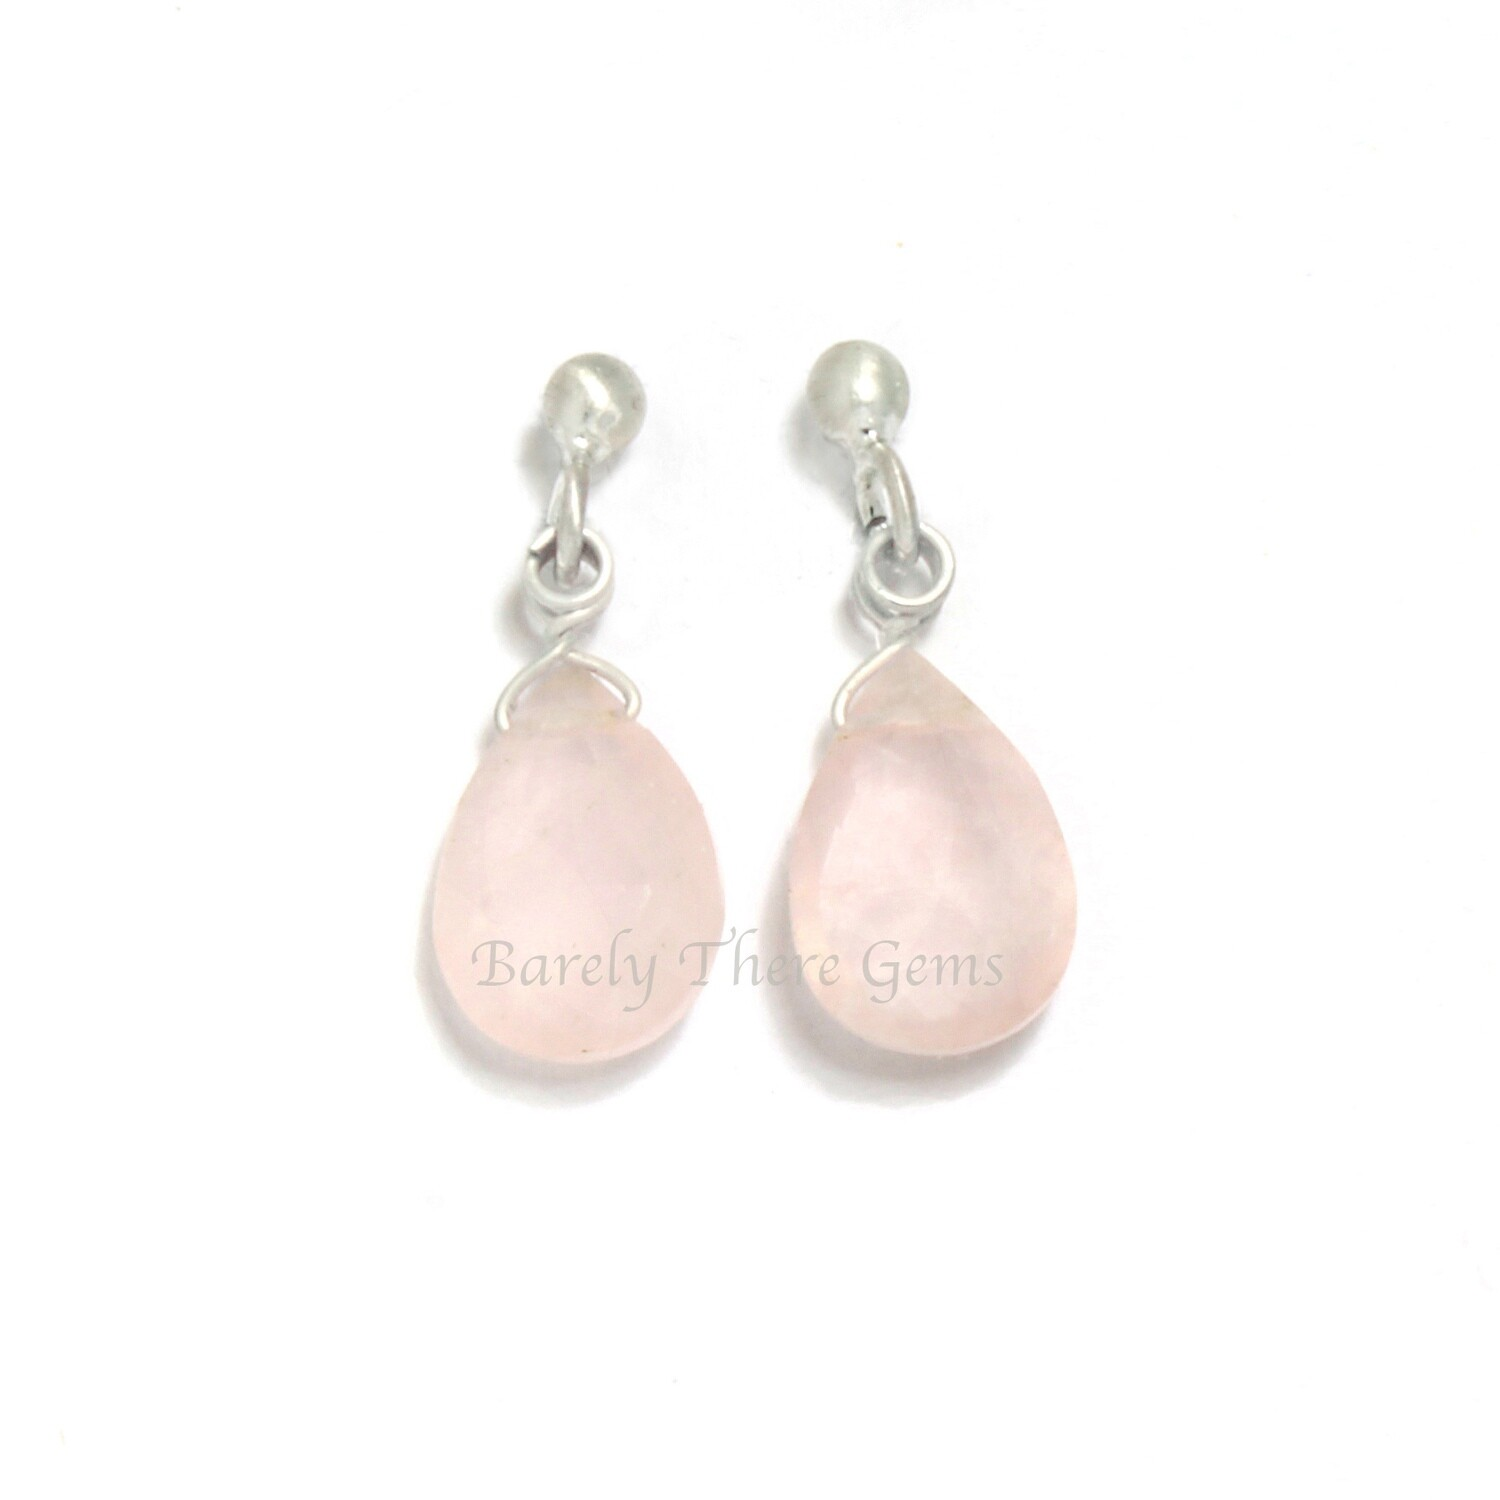 Rose Quartz, Sterling Silver, Stud Earrings